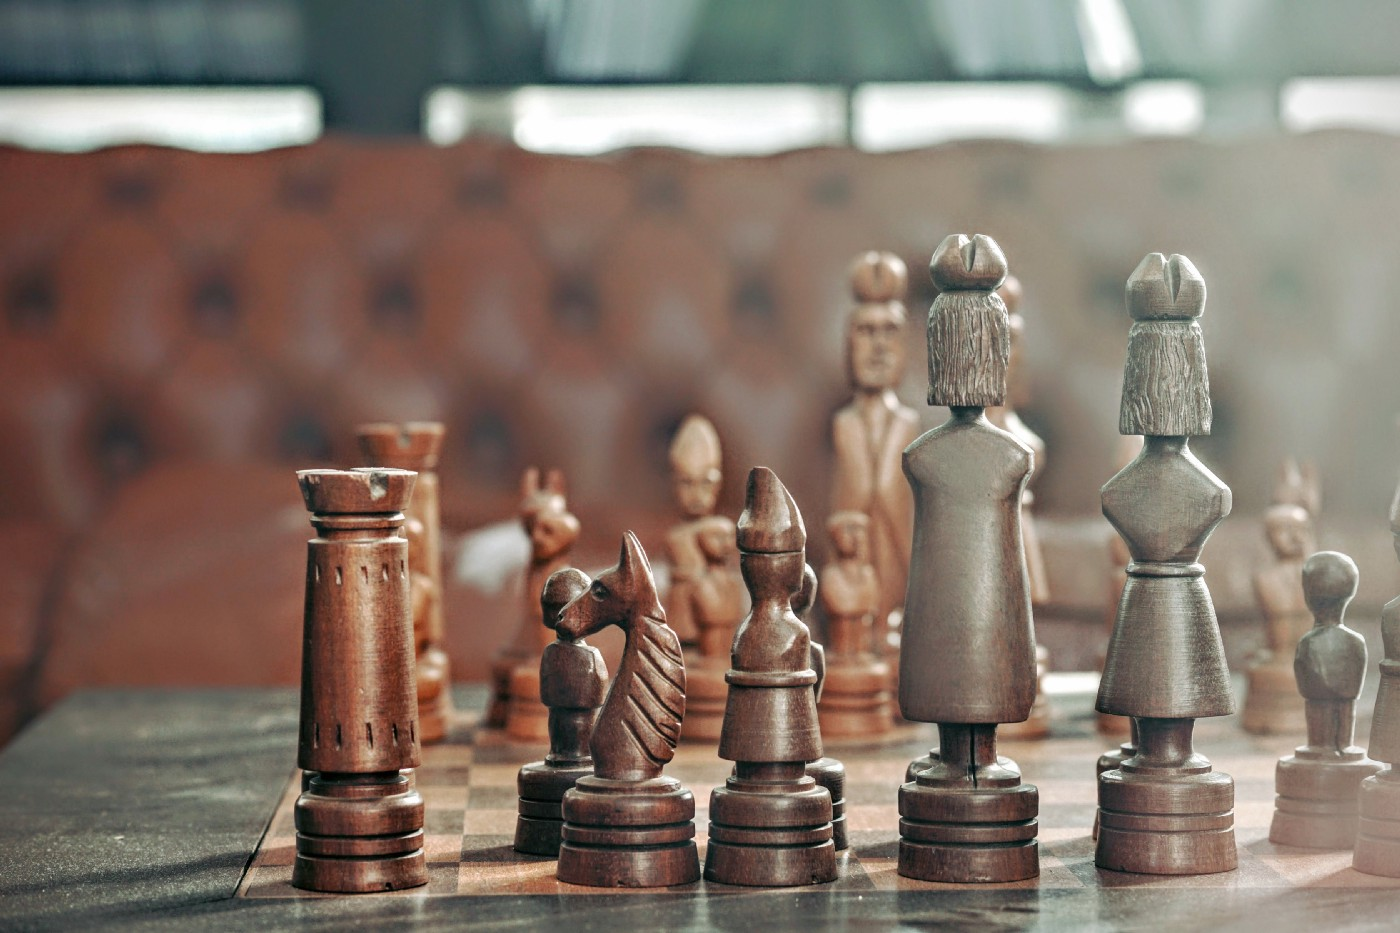 Management sometimes feels like a game of chess.